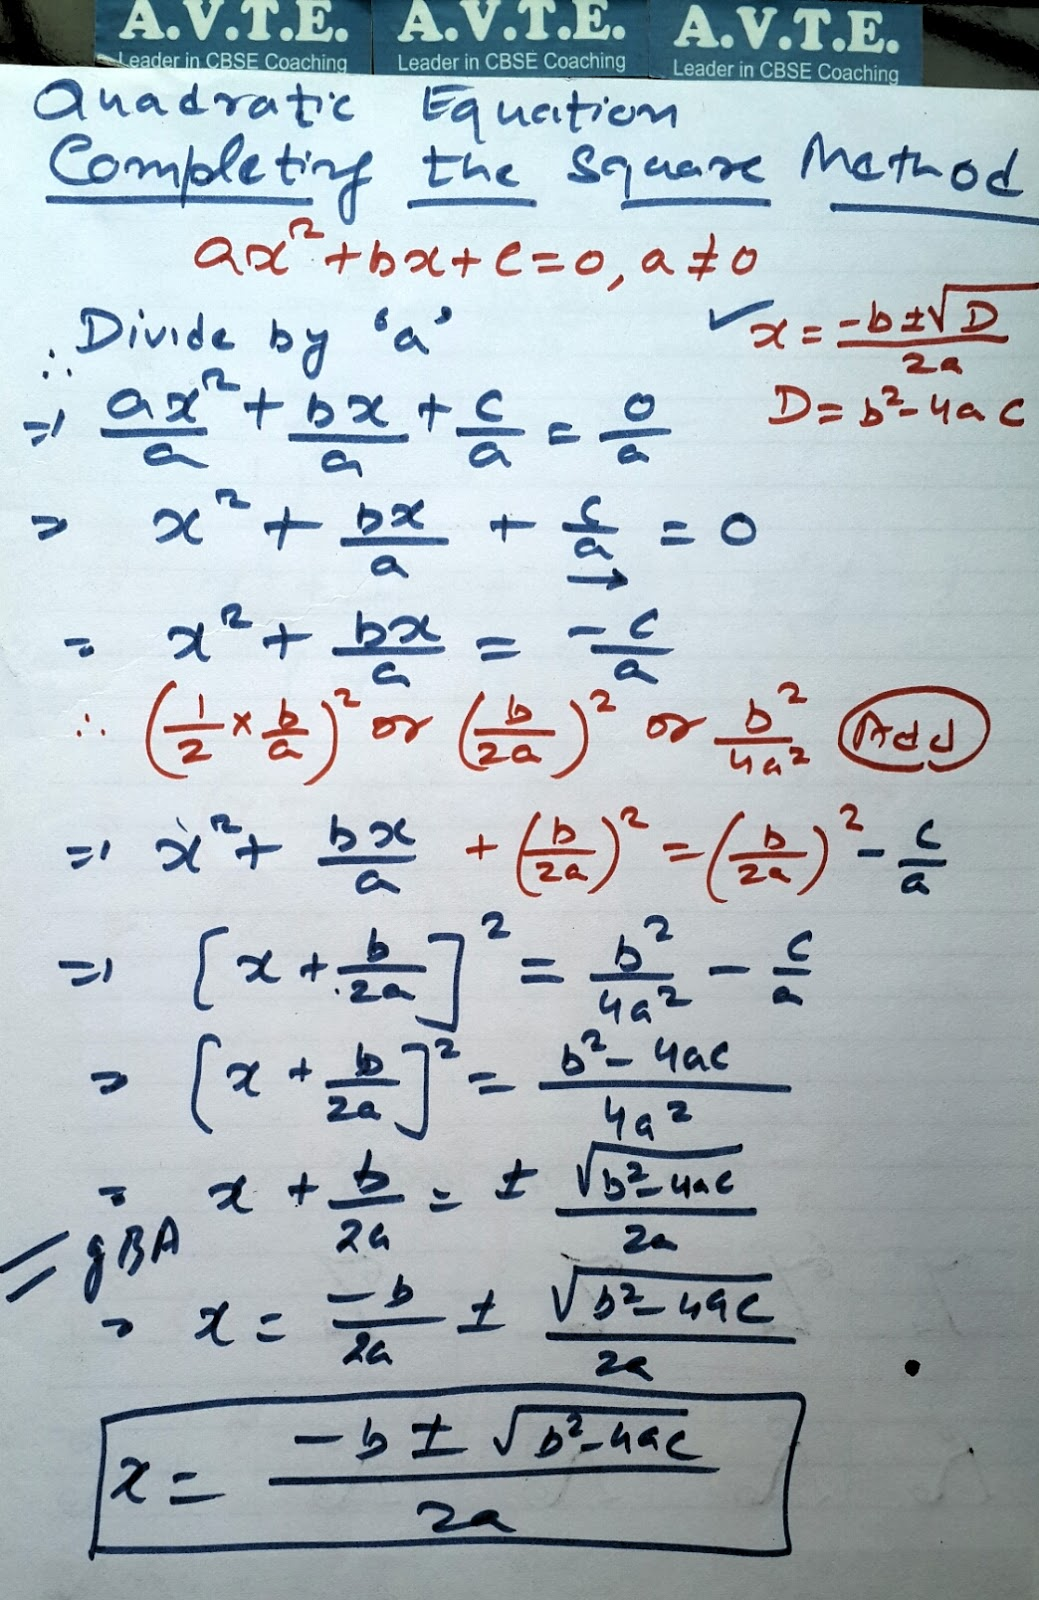 Maths4all Completing The Square Method Of Quadratic